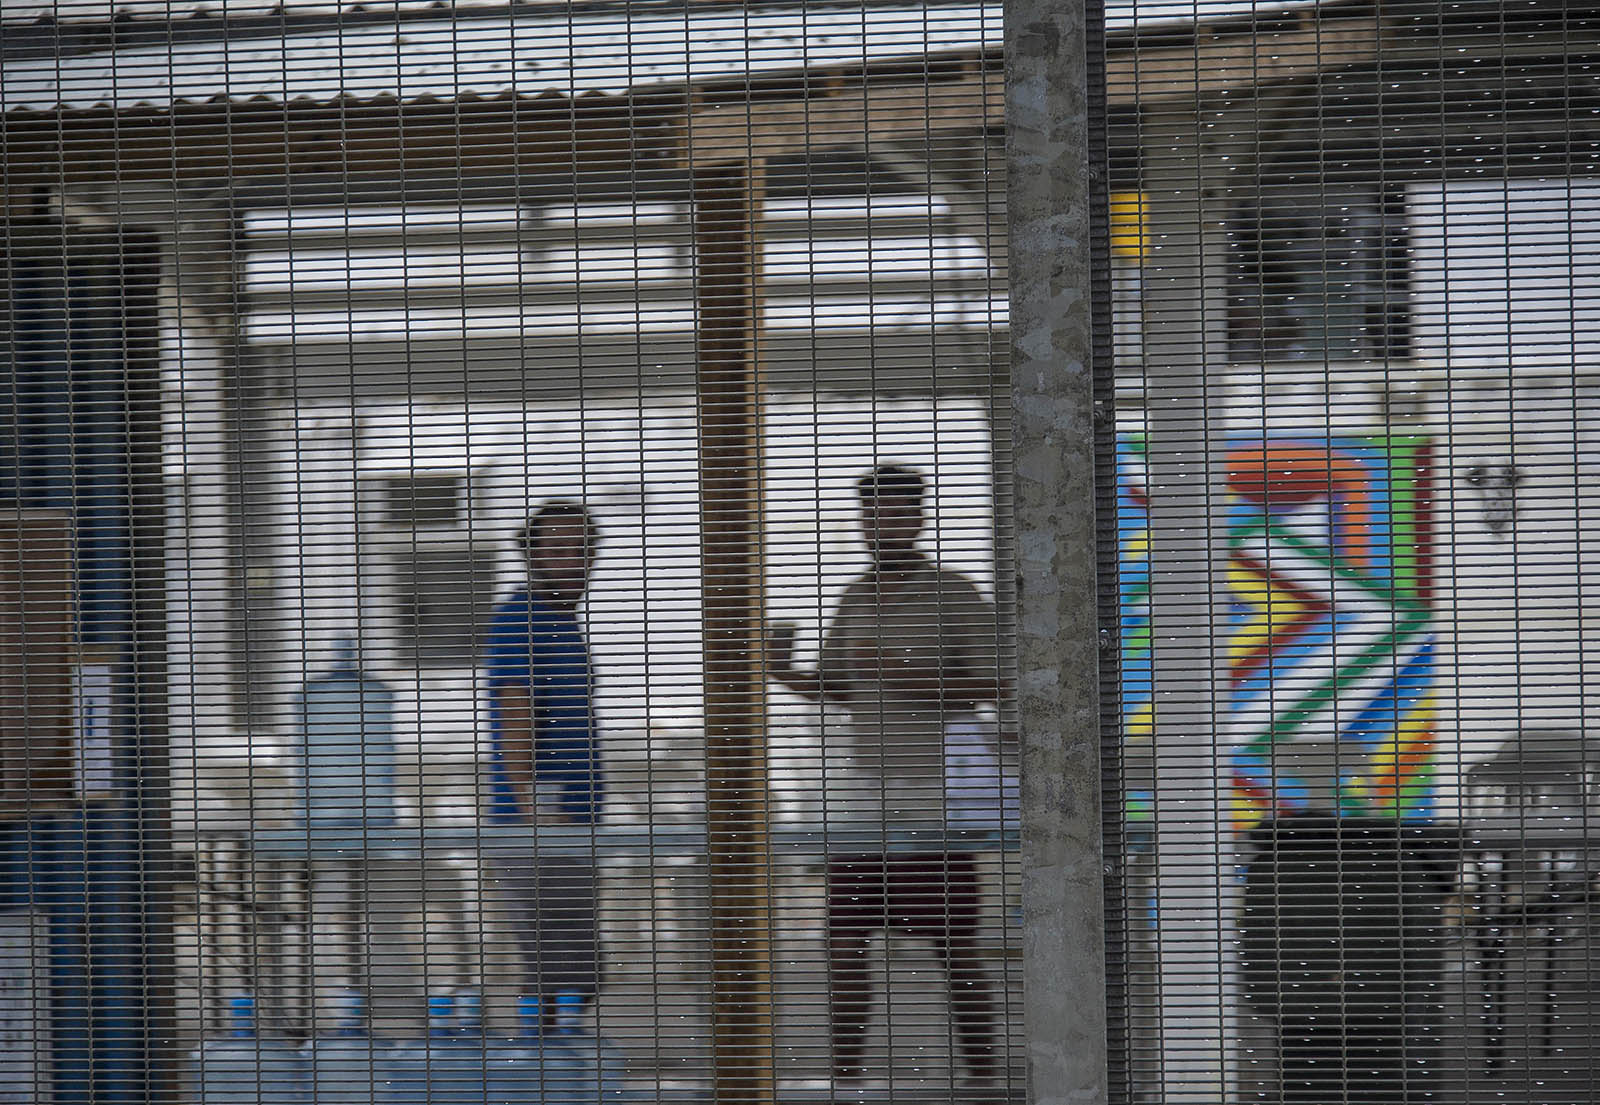 Detainess inside Australia's Lombrum Manus Island asylum seeker detention centre. © Brian Cassey.